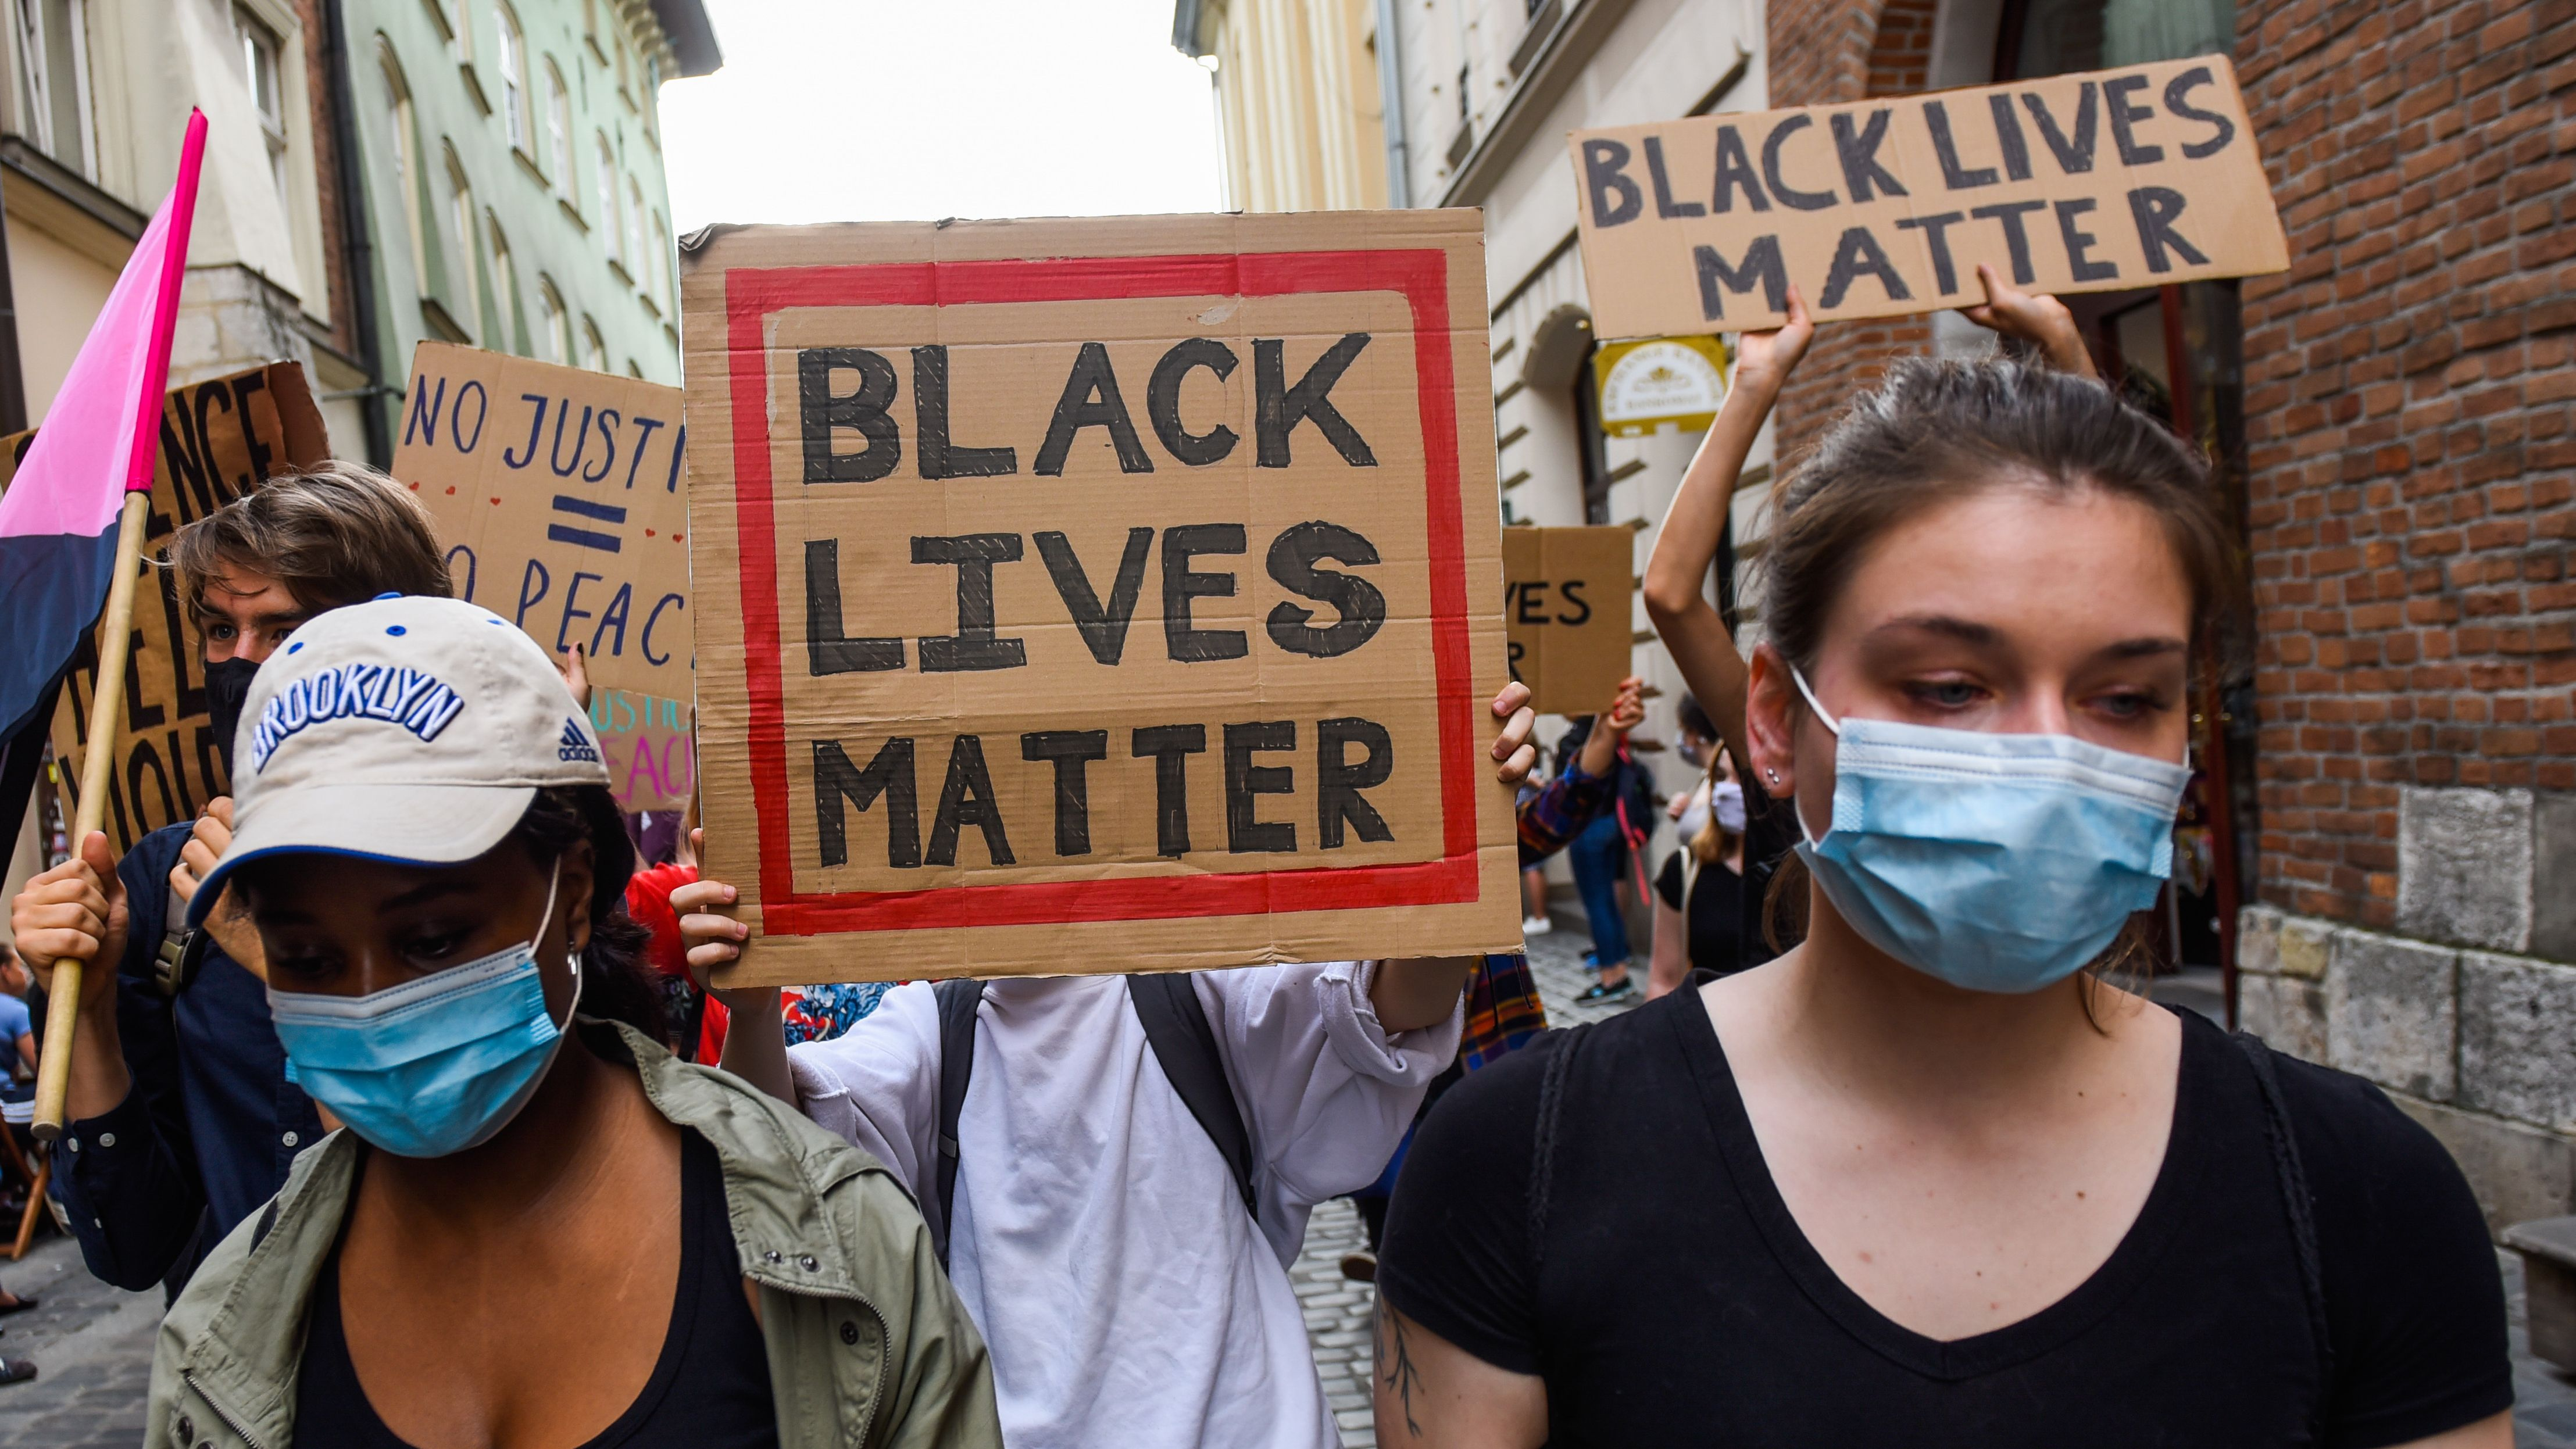 Twitter Instagram Are Key Platforms Amid Protests Facebook Continues To Spread Misinformation